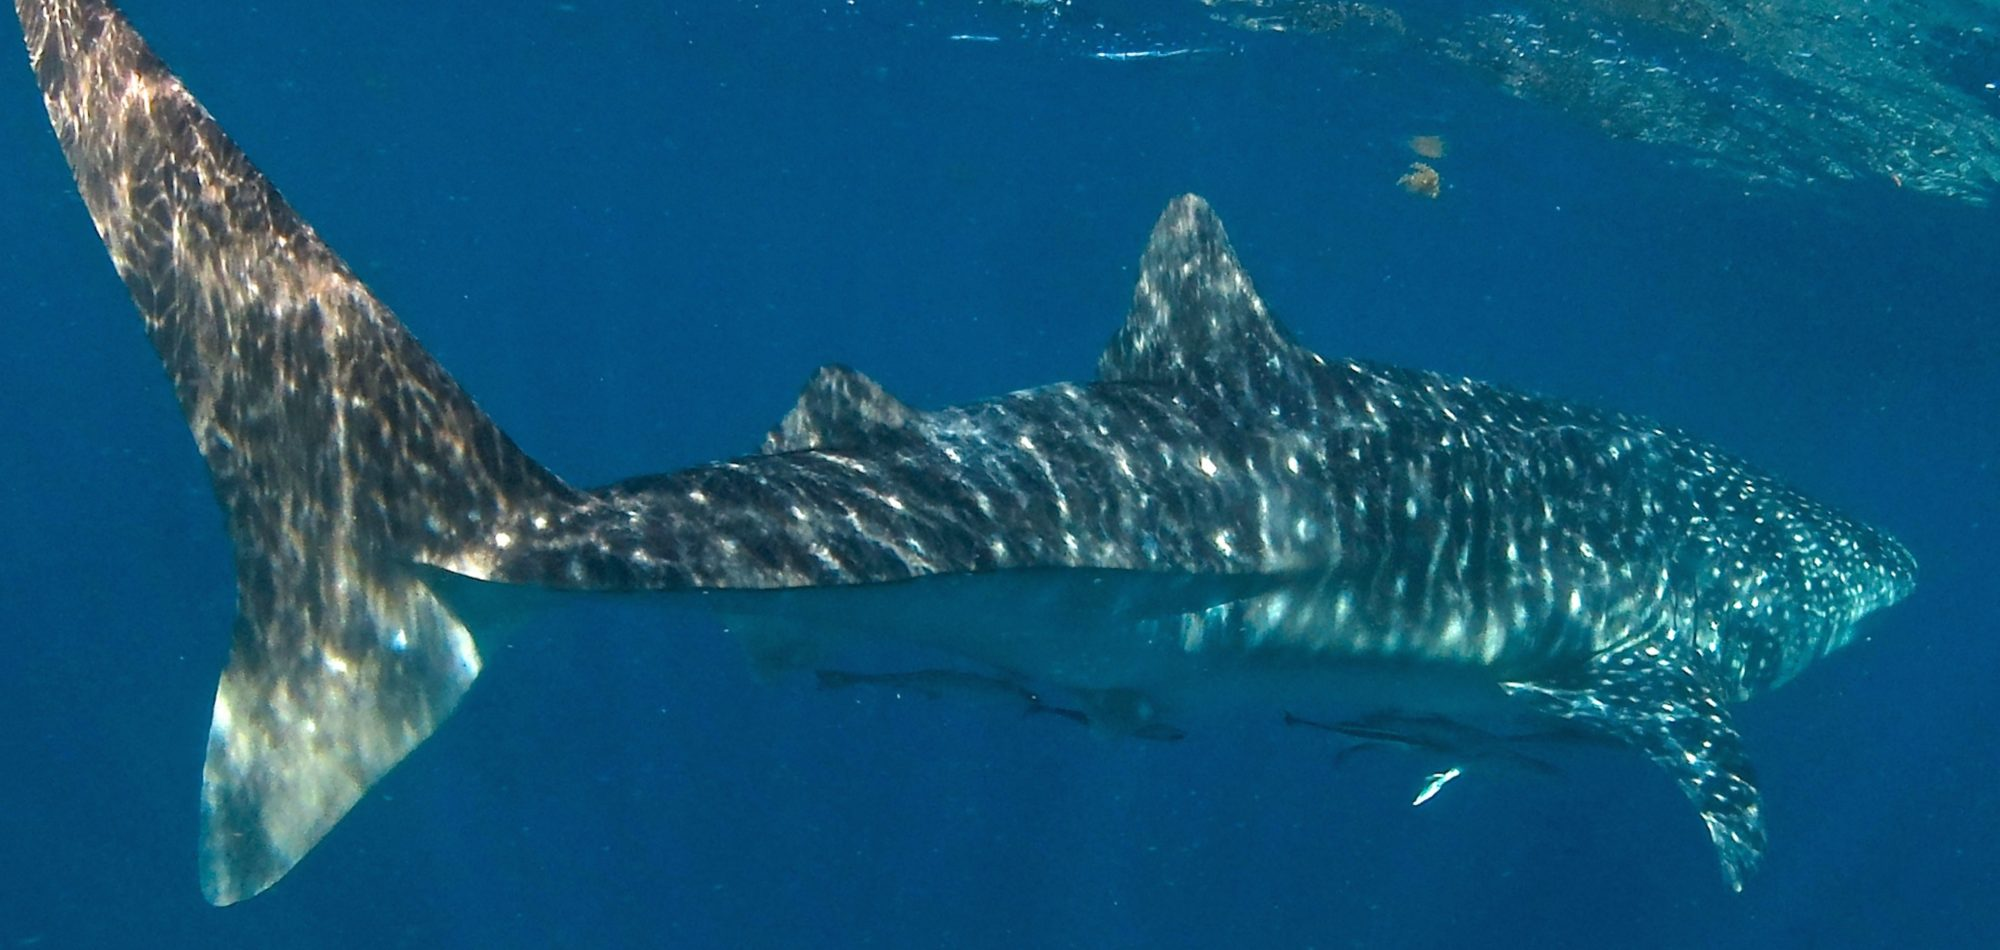 Ningaloo Reef - Whale Shark